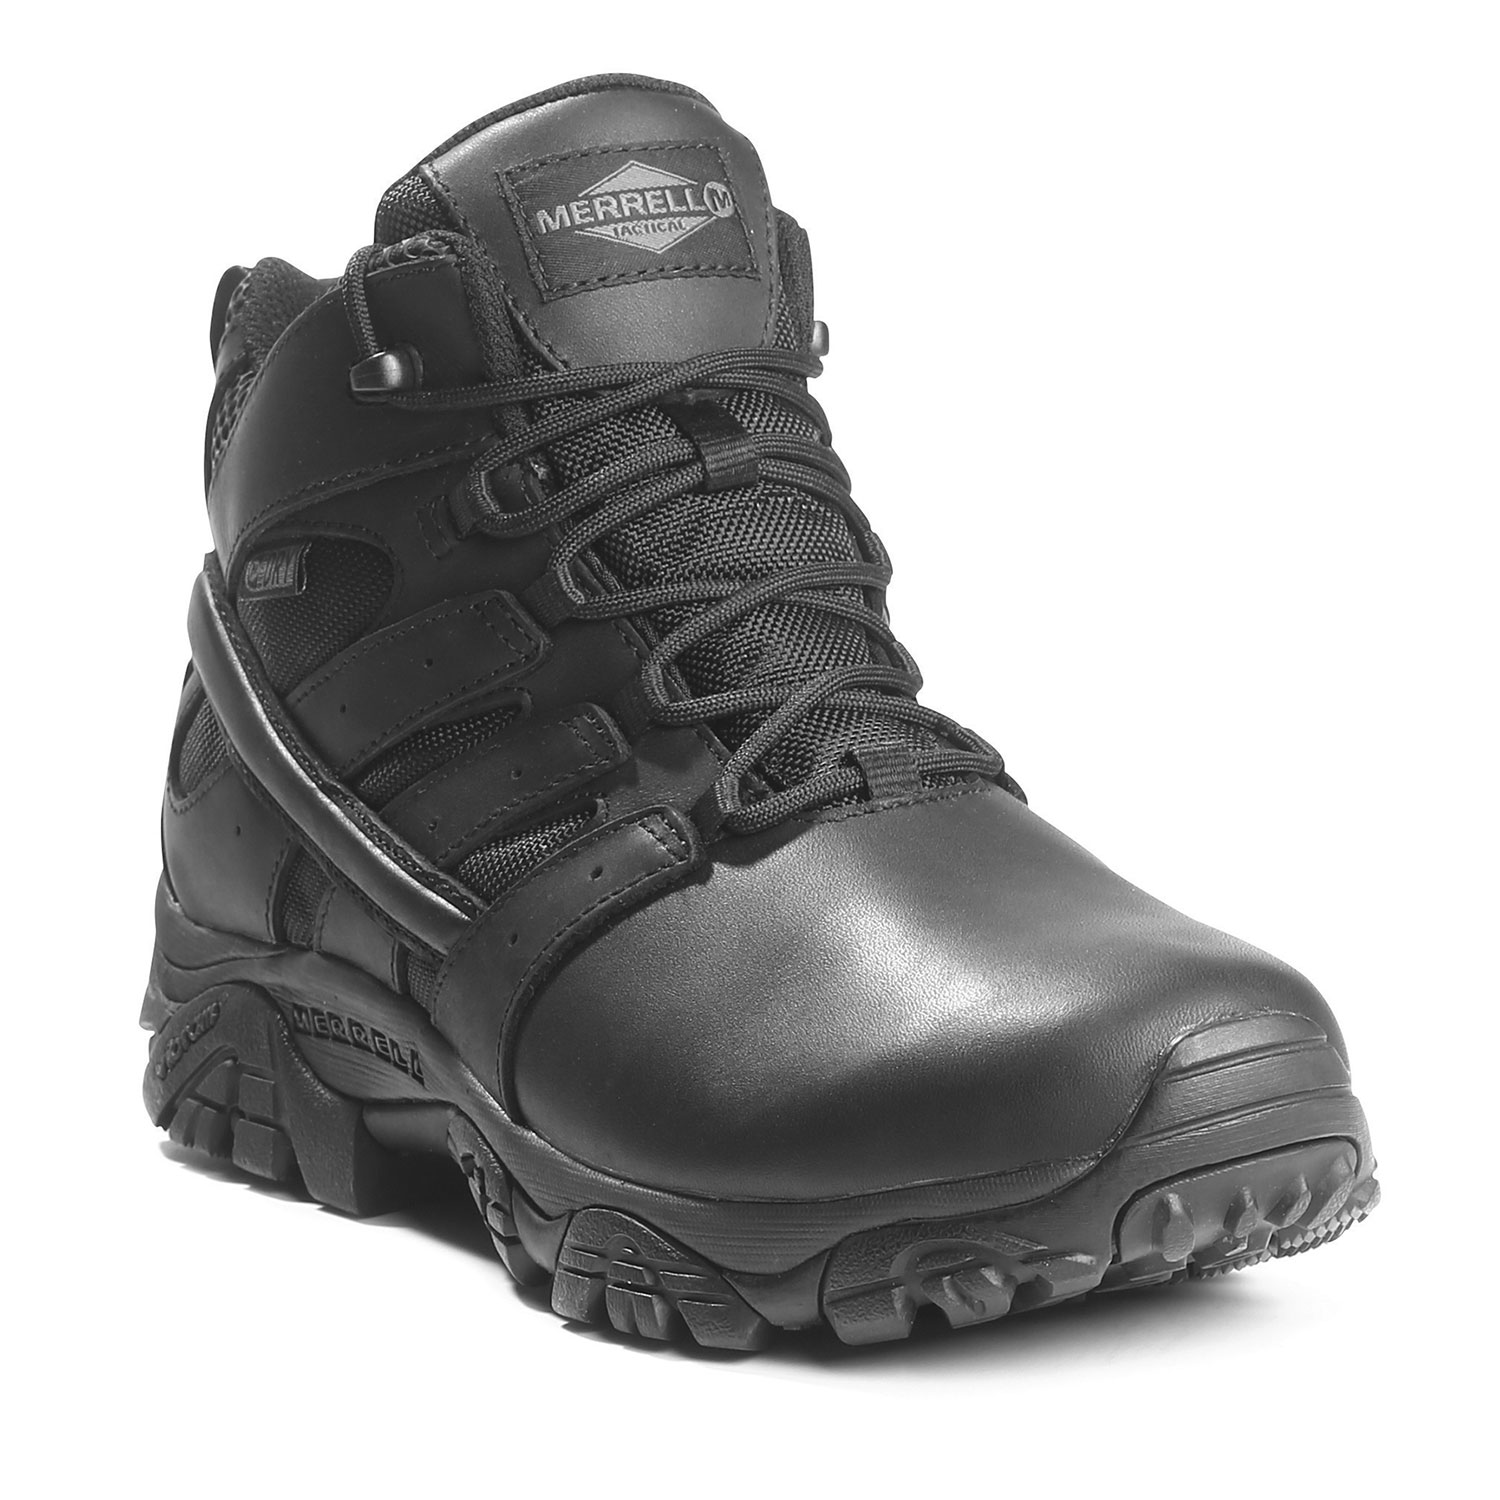 Merrell Women's Moab 2 Mid Tactical Response Waterproof Boot